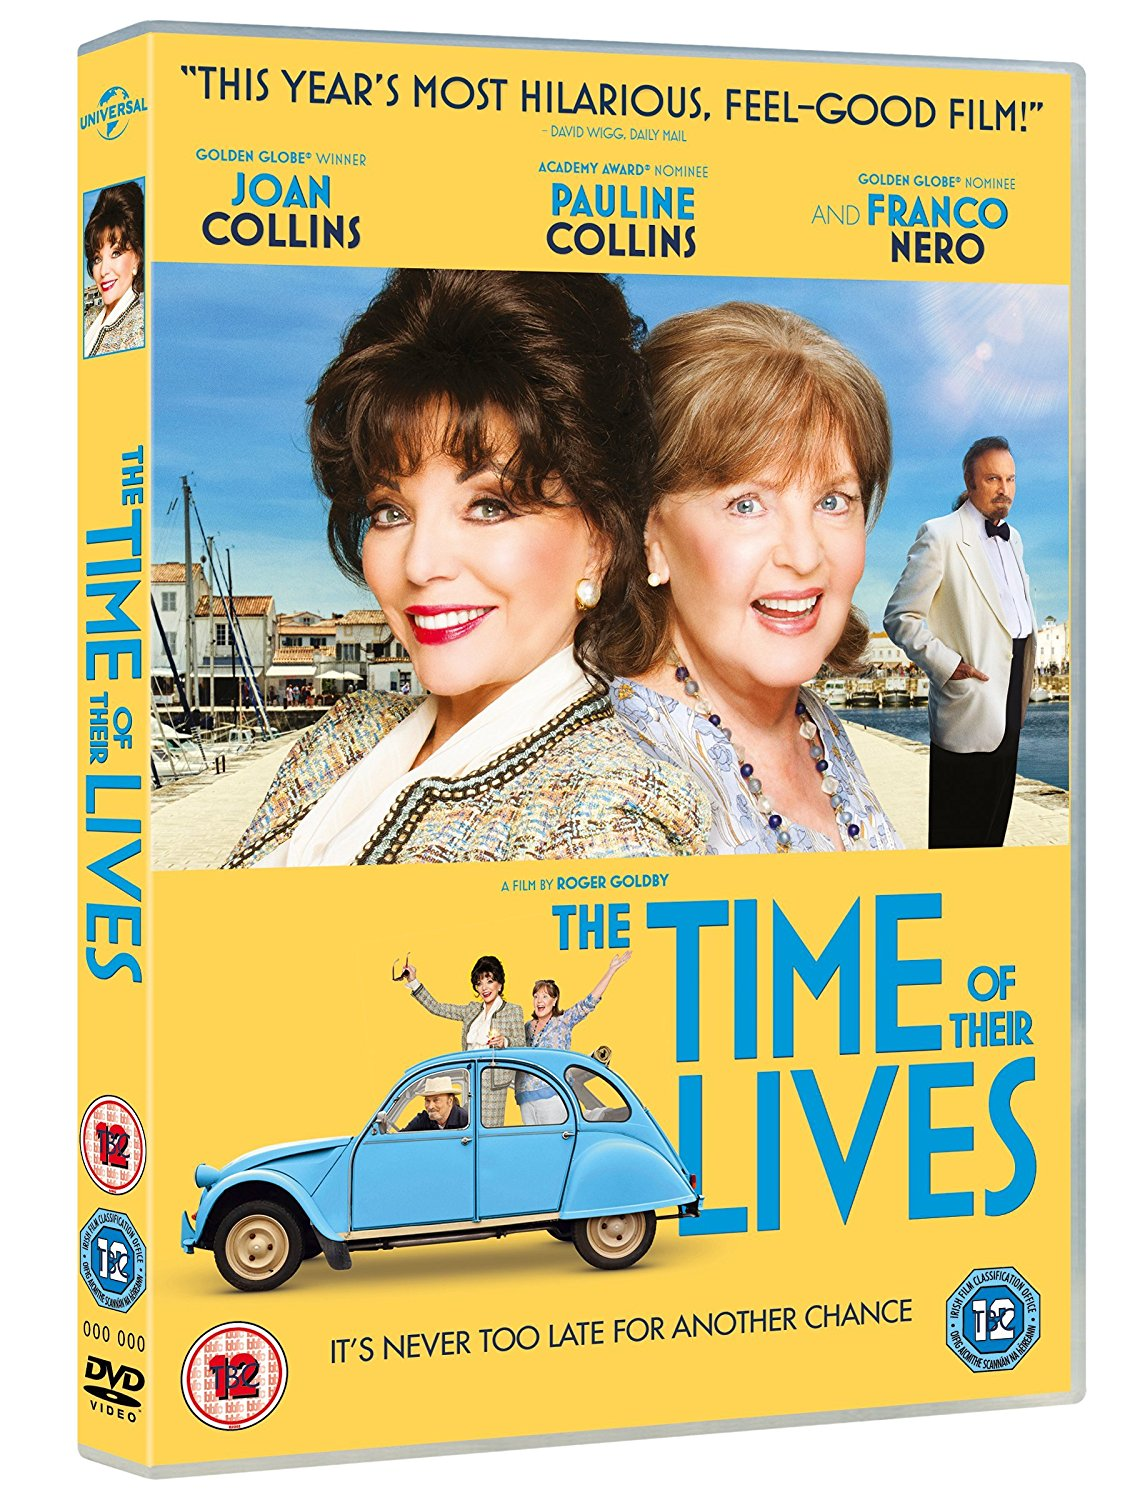 THE TIME OF THEIR LIVES DVD OUT JULY 3RD 2017!!